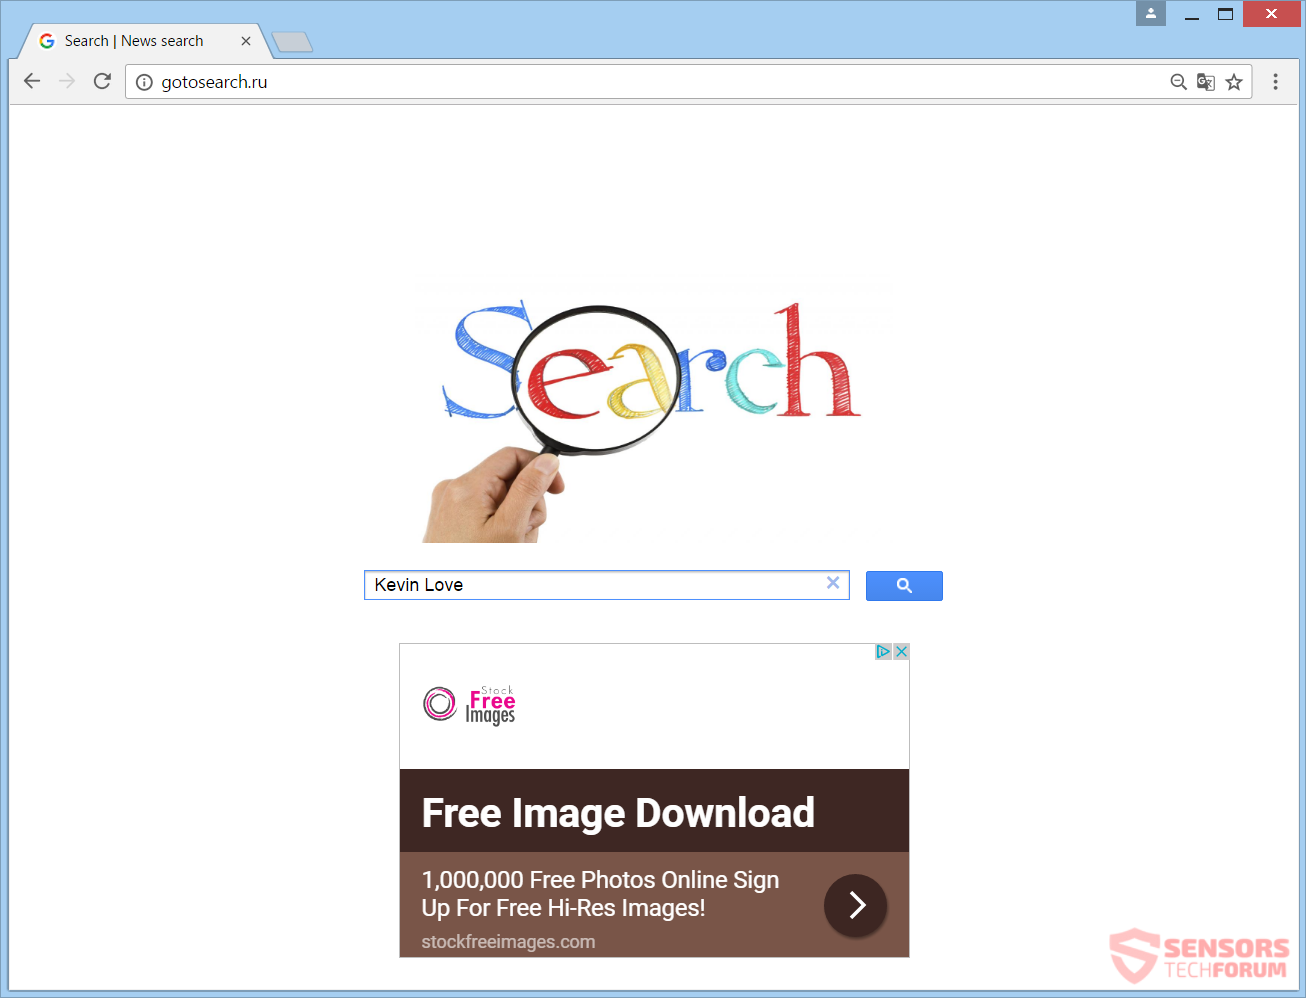 stf-gotosearch-ru-browser-hijacker-go-to-search-redirect-main-site-page